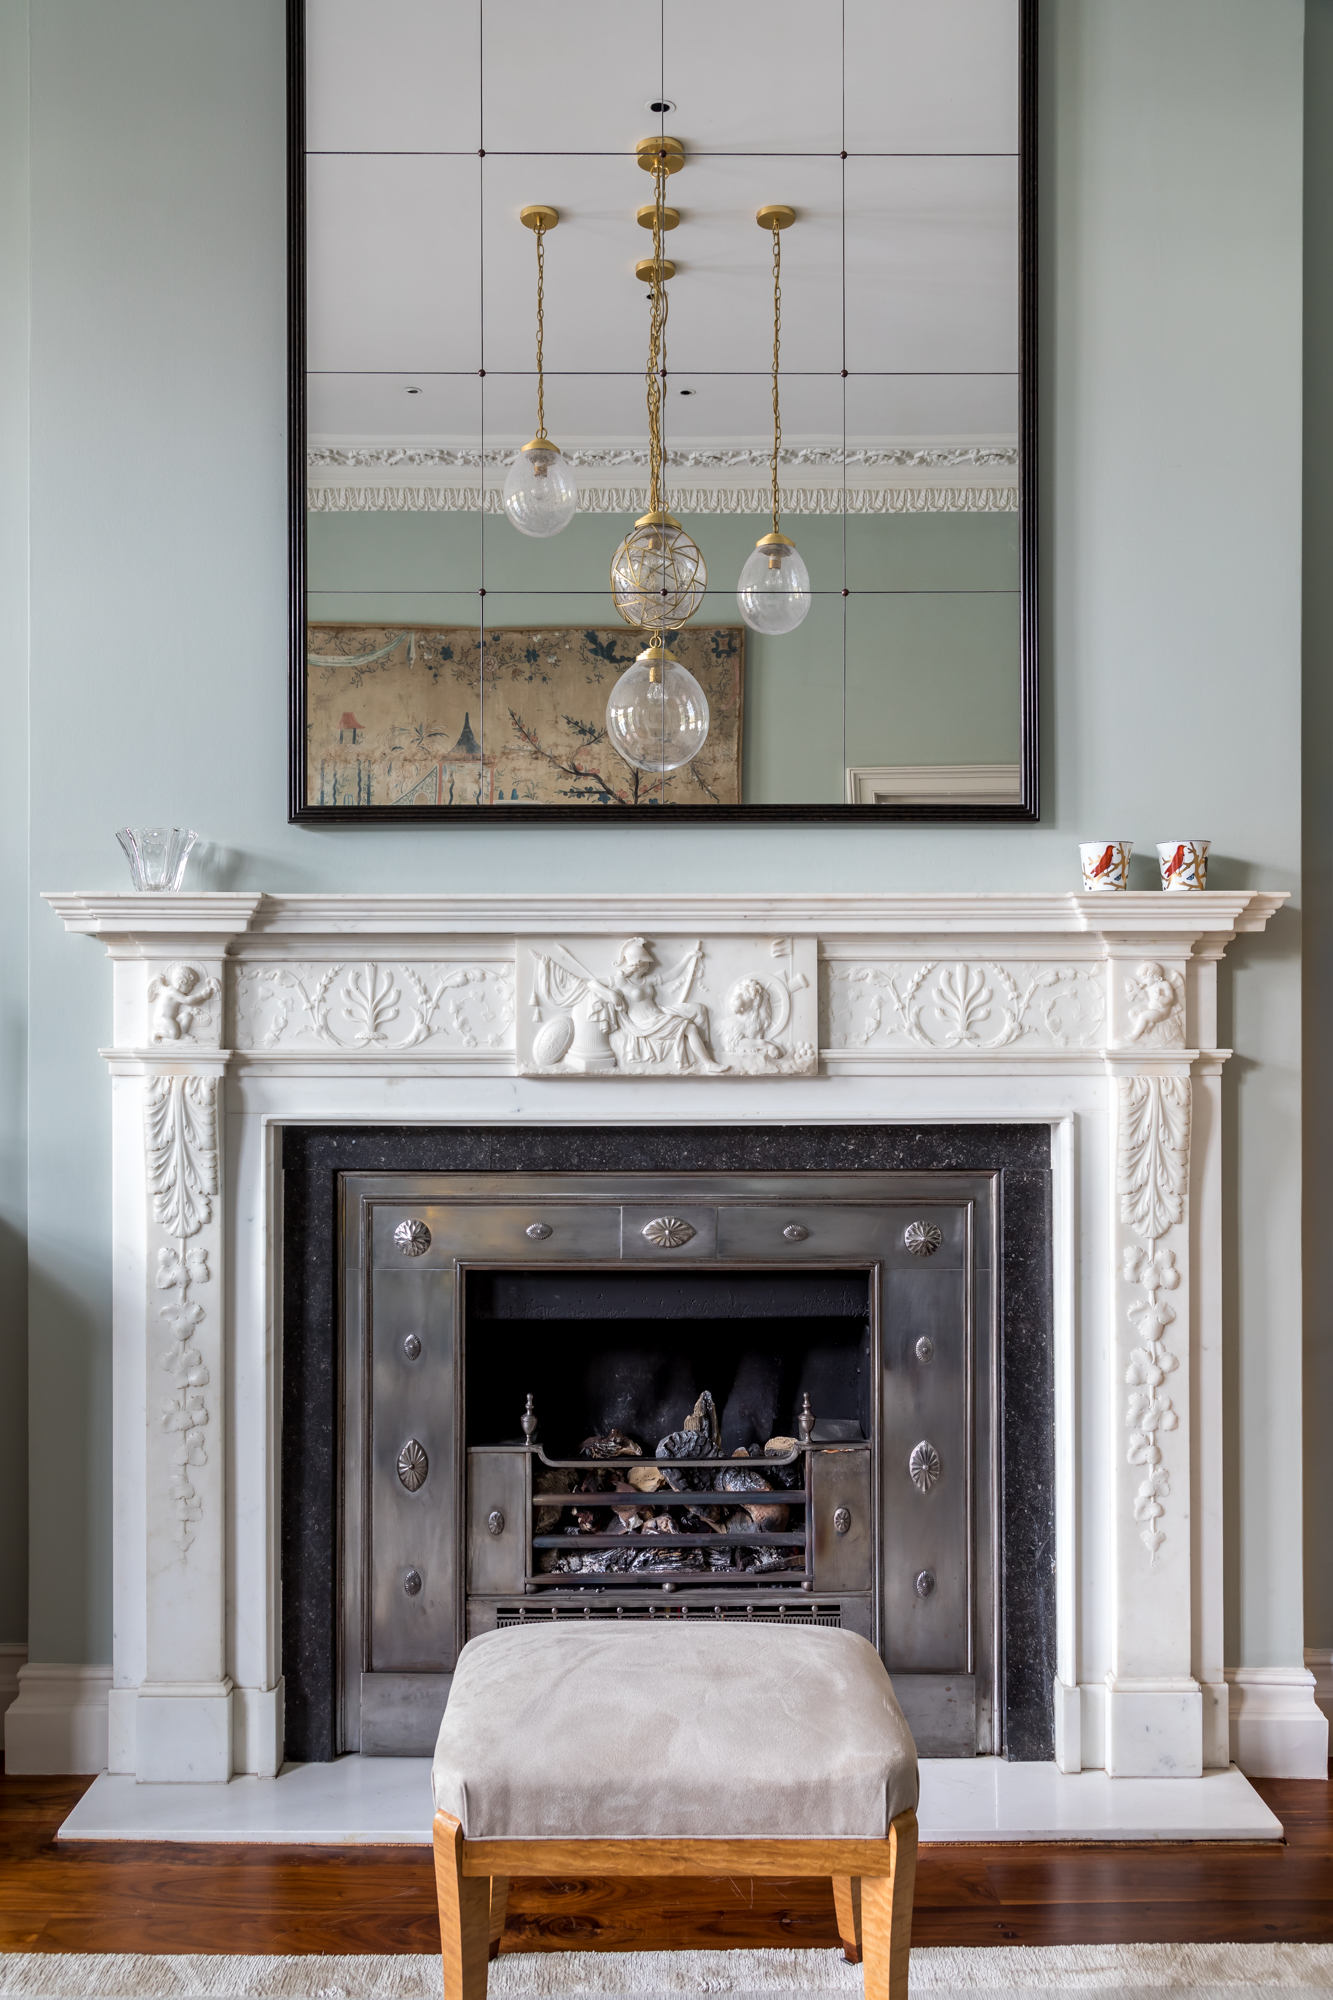 jonathan bond, interior photographer, white surround ornate marble fireplace mantel, holland park, london